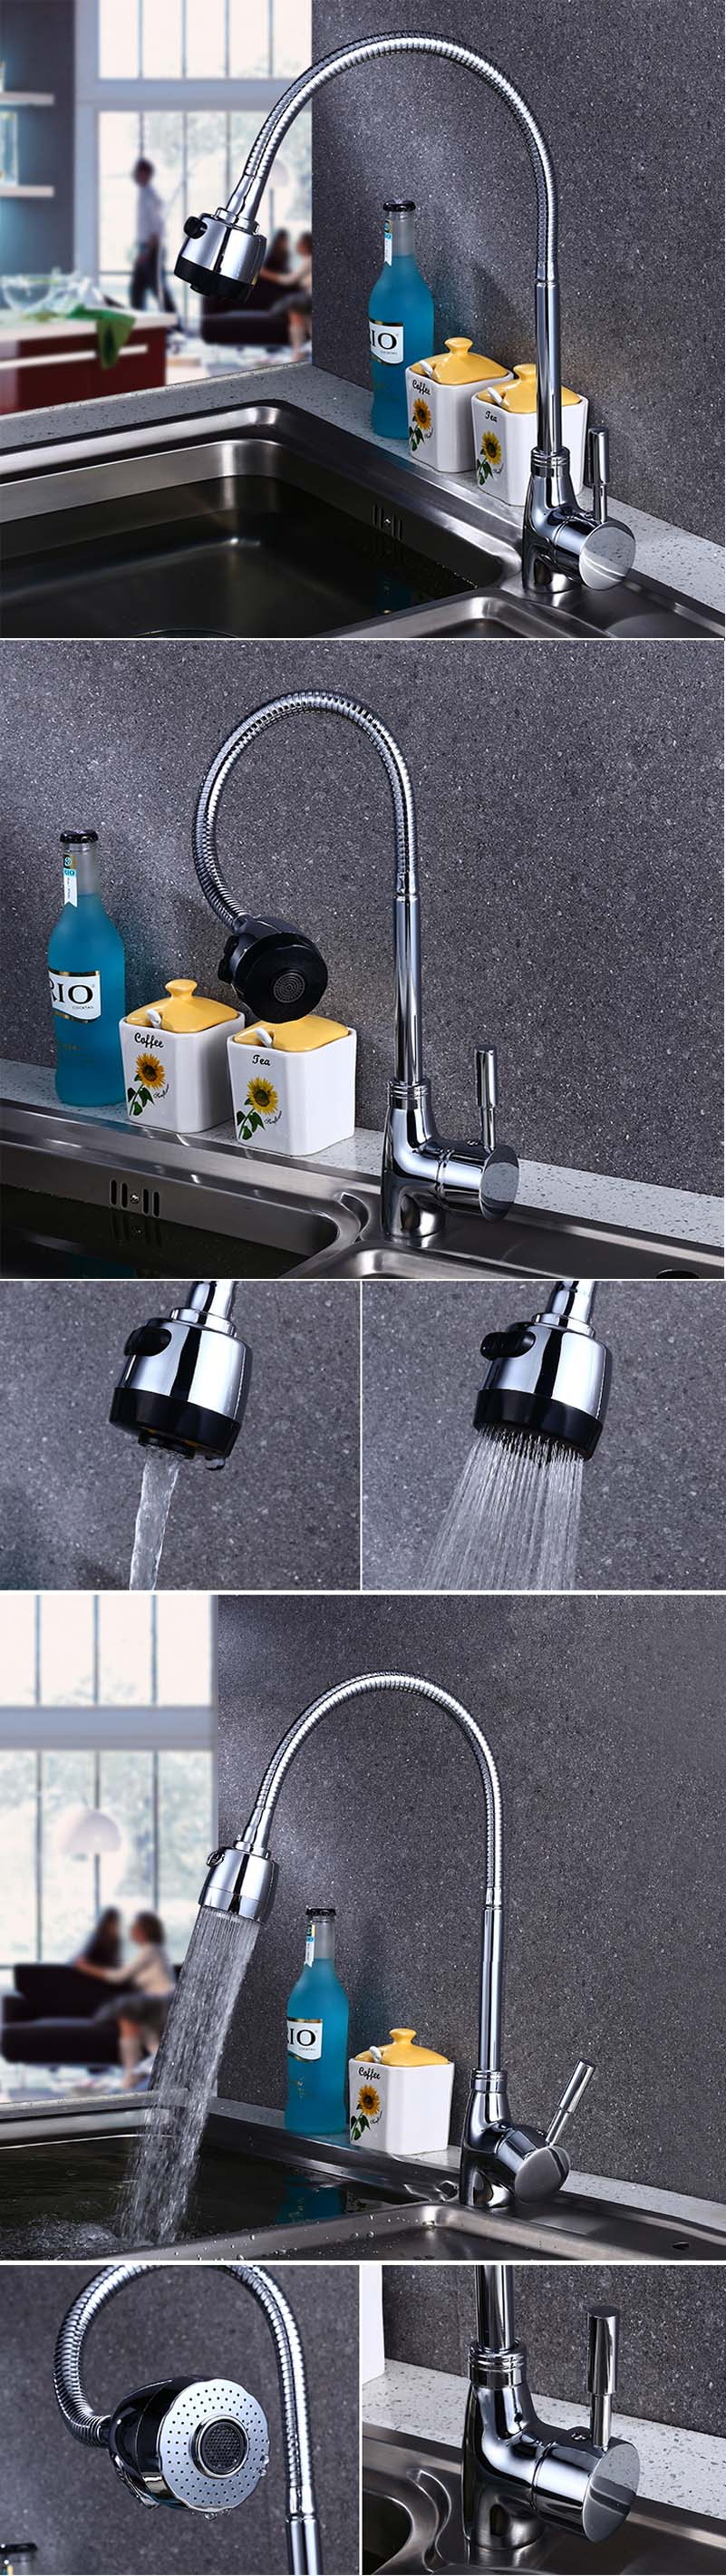 Universal Rotation Kitchen Faucet Tip Three-way Hot Cold Water Spout Bathroom Waterfall Mix Tap Sink Faucet Washing Vegetables